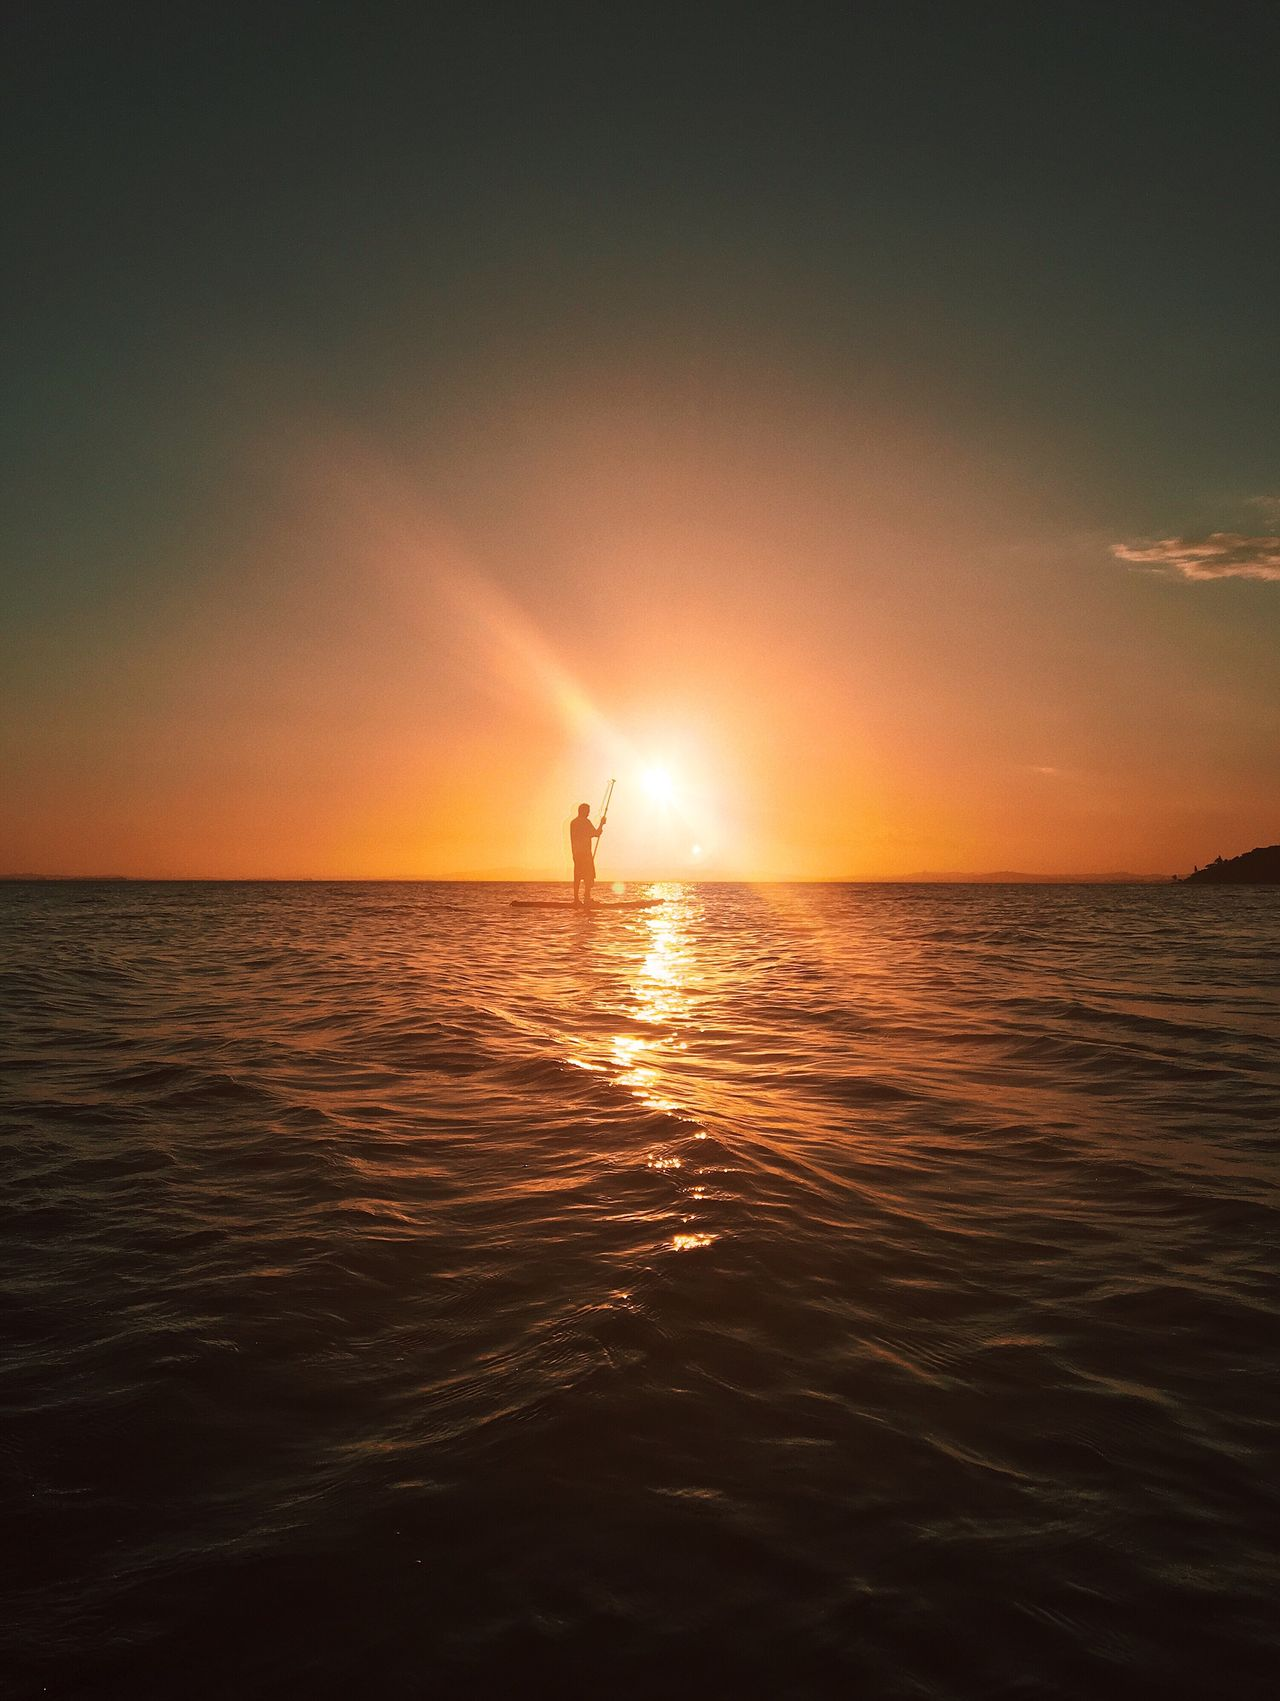 Every day is a day to stand up for something. Sea Sunset Horizon Over Water Water Scenics Sun Nature Beauty In Nature Idyllic Tranquility Reflection Tranquil Scene Sunlight Sky Outdoors Real People Adventure Vacations One Person Day Stand Up Paddling Sports Summer Sunrise Silhouette